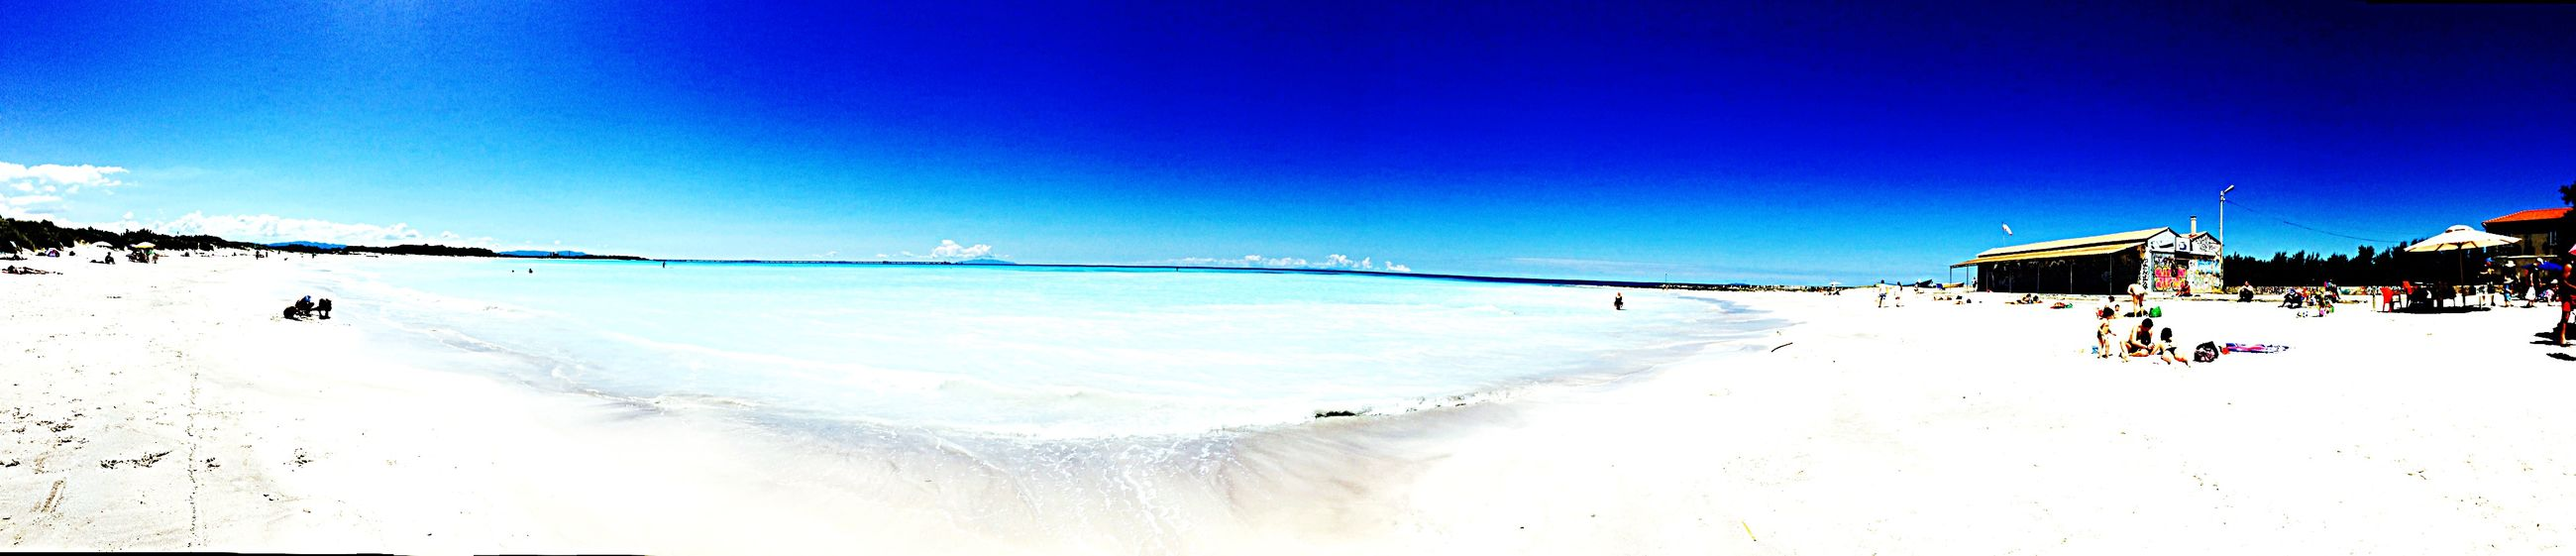 Paradise Beach Summertime Sun Blue Sky Skyandsand Amazing View First Eyeem Photo